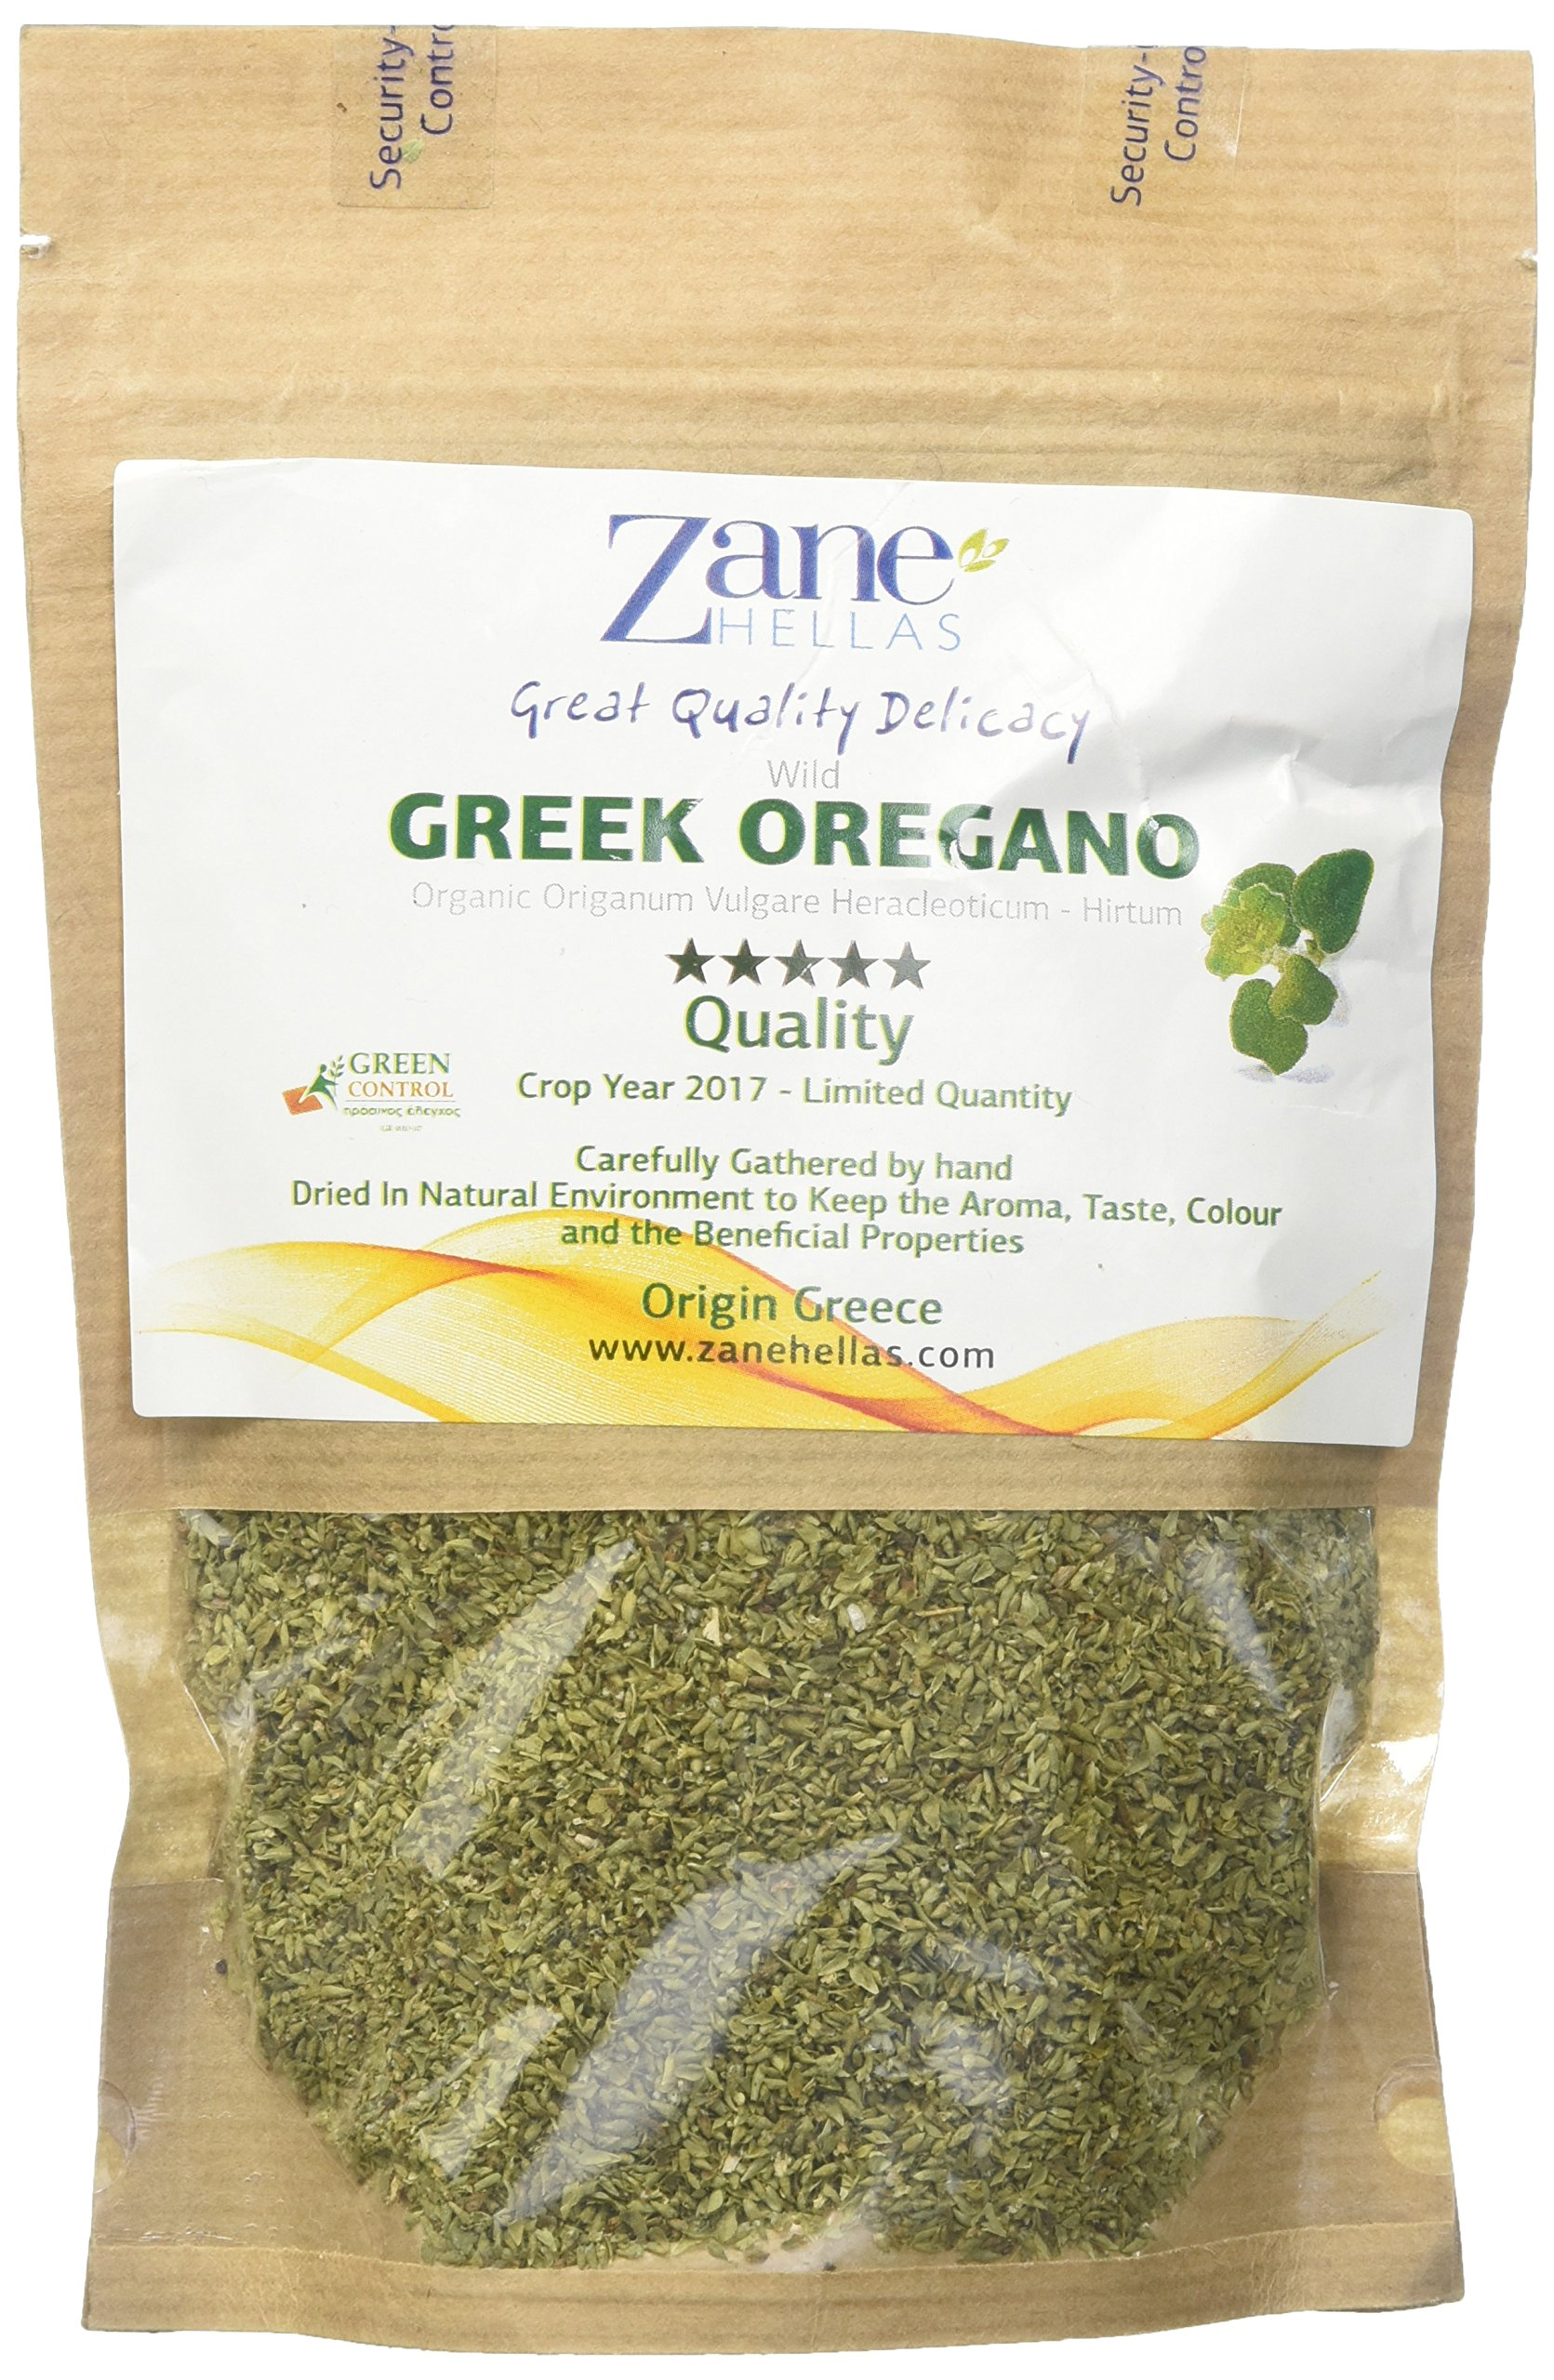 Zane Hellas Organic Culinary Greek Wild Dried Oregano Herb Leaves 1.40 oz. - 40 gr. Crop Year 2017. Limited Quantity